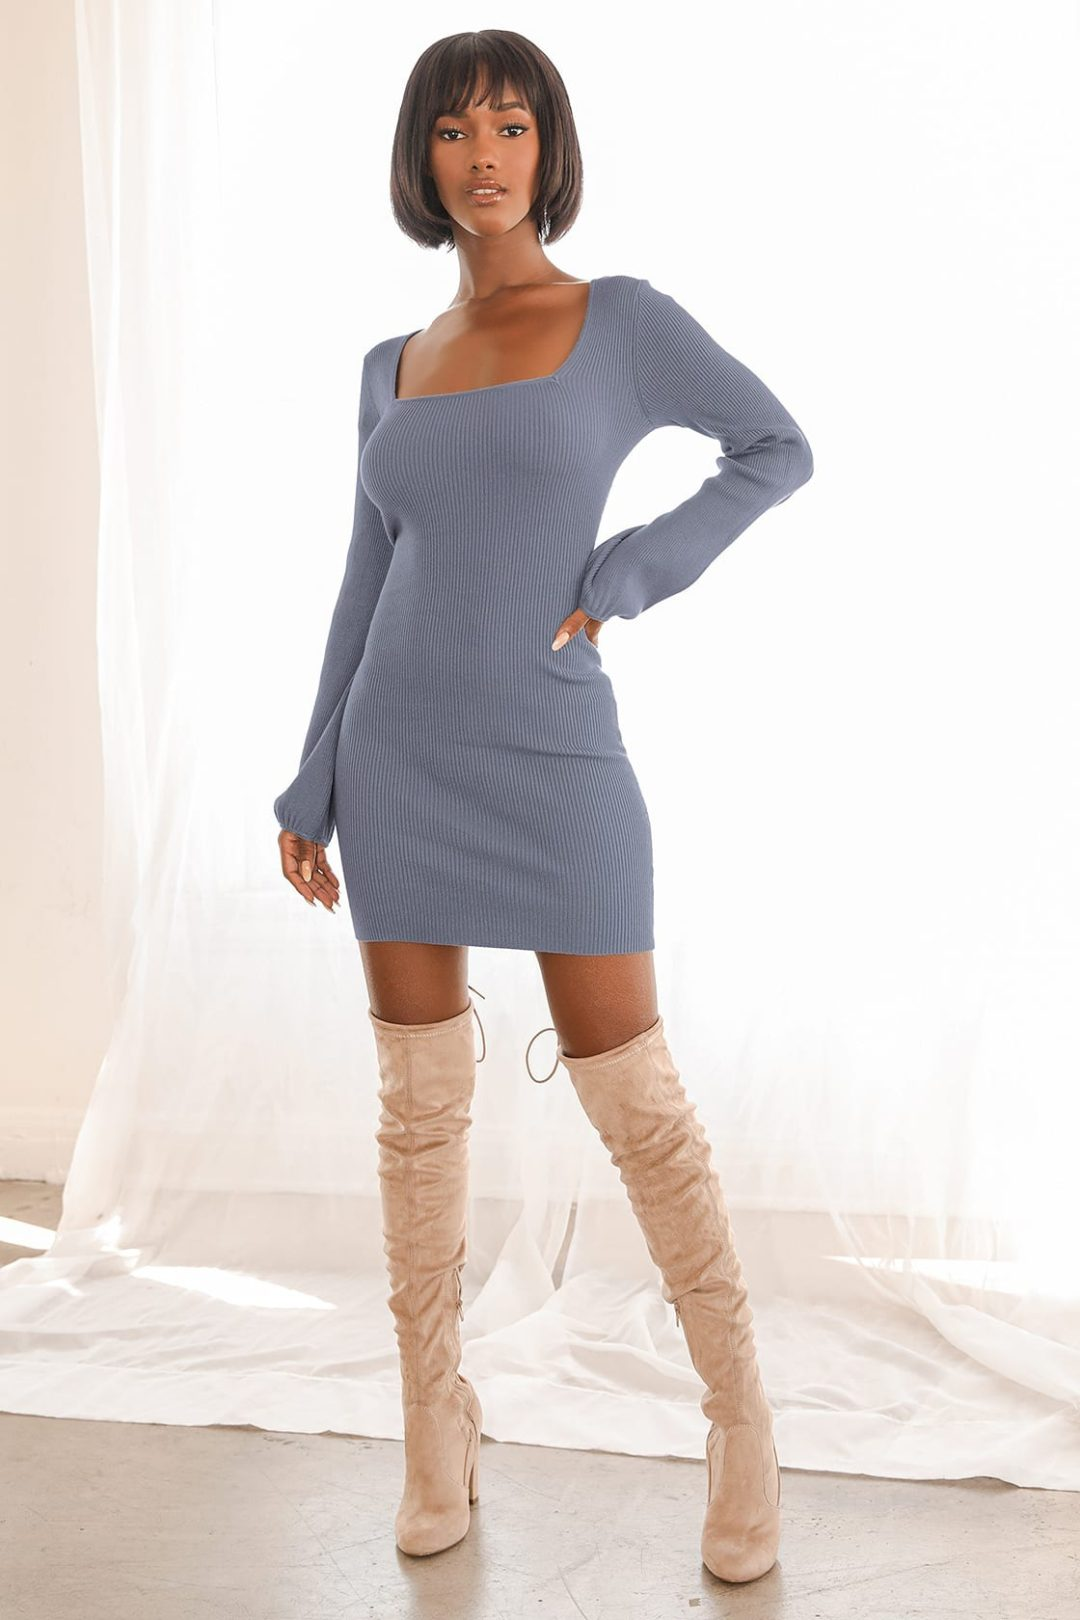 What To Wear With Thigh High Boots: Simple long-sleeve sweater dress with beige thigh-high boots